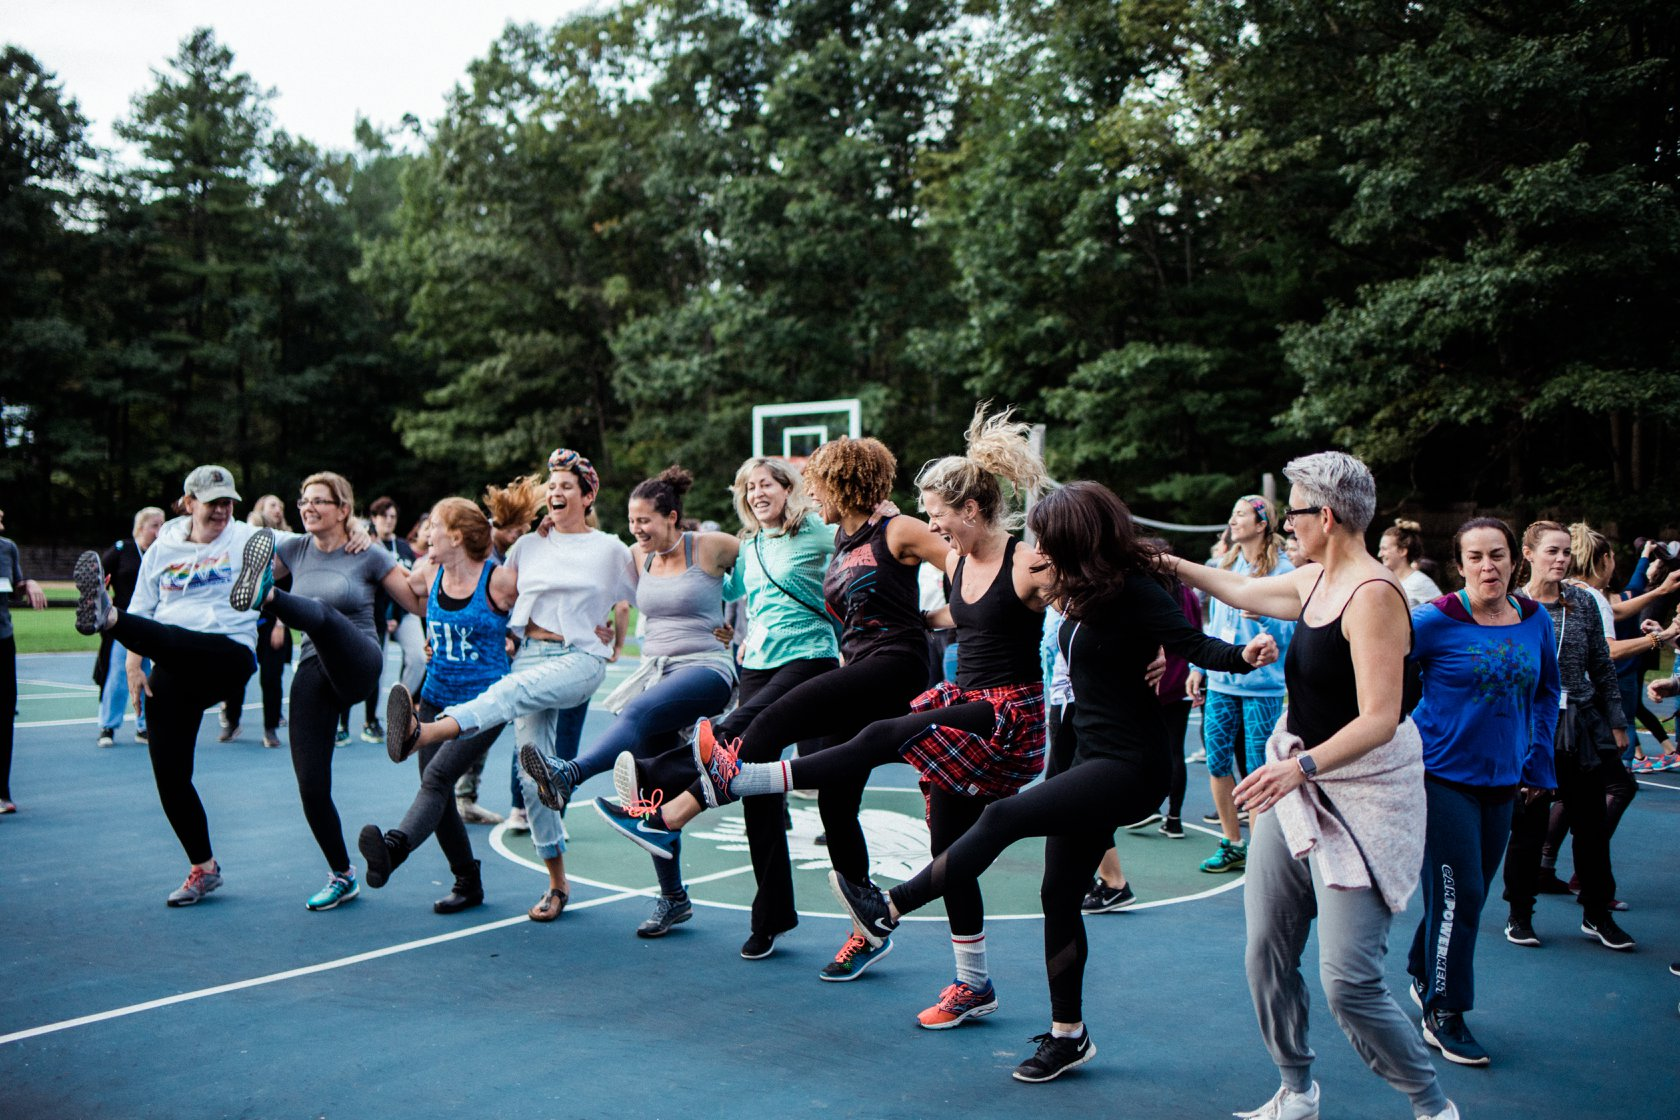 Campowerment is a summer-camp like retreat for women | Cool Mom Picks